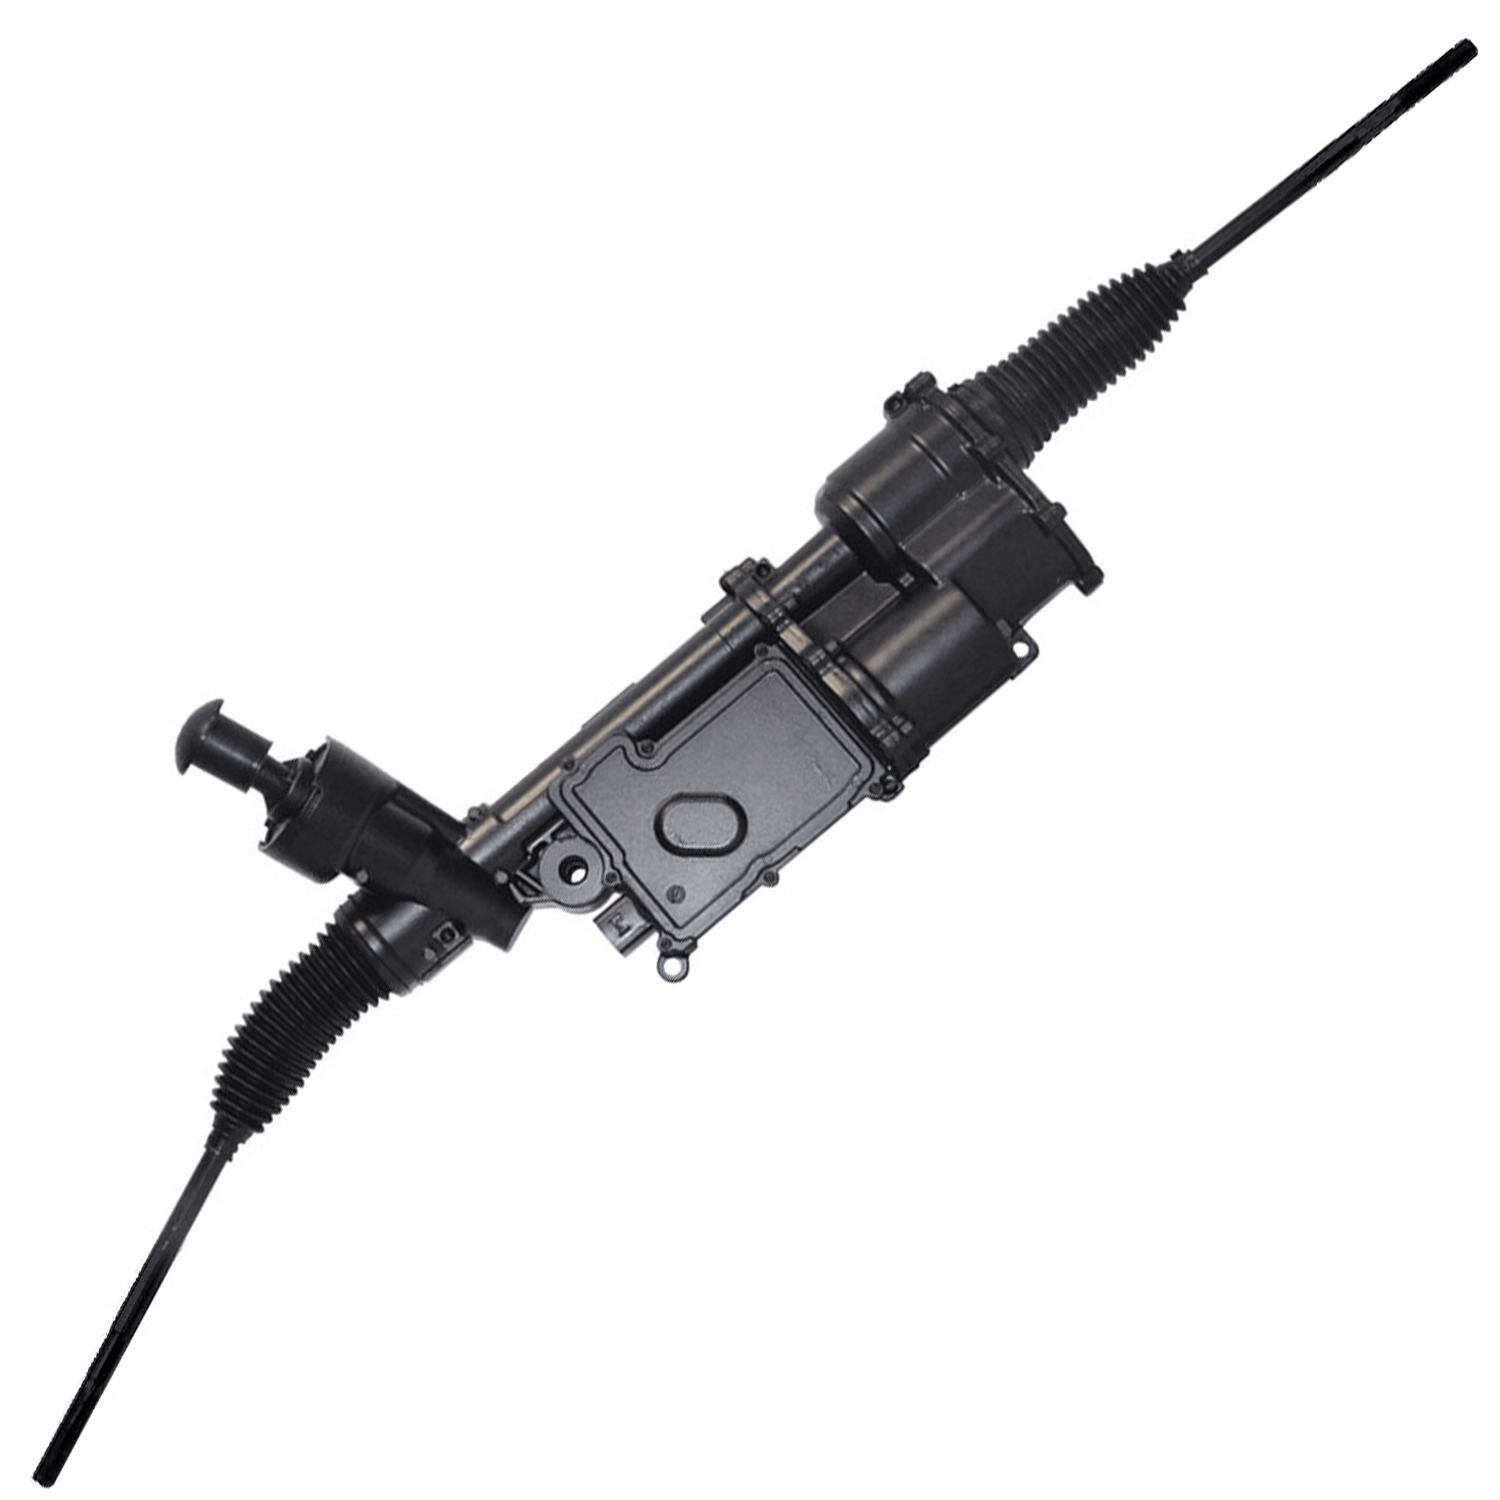 NEW Complete Rack and Pinion Assembly for 2013-2017 Dodge Ram 1500